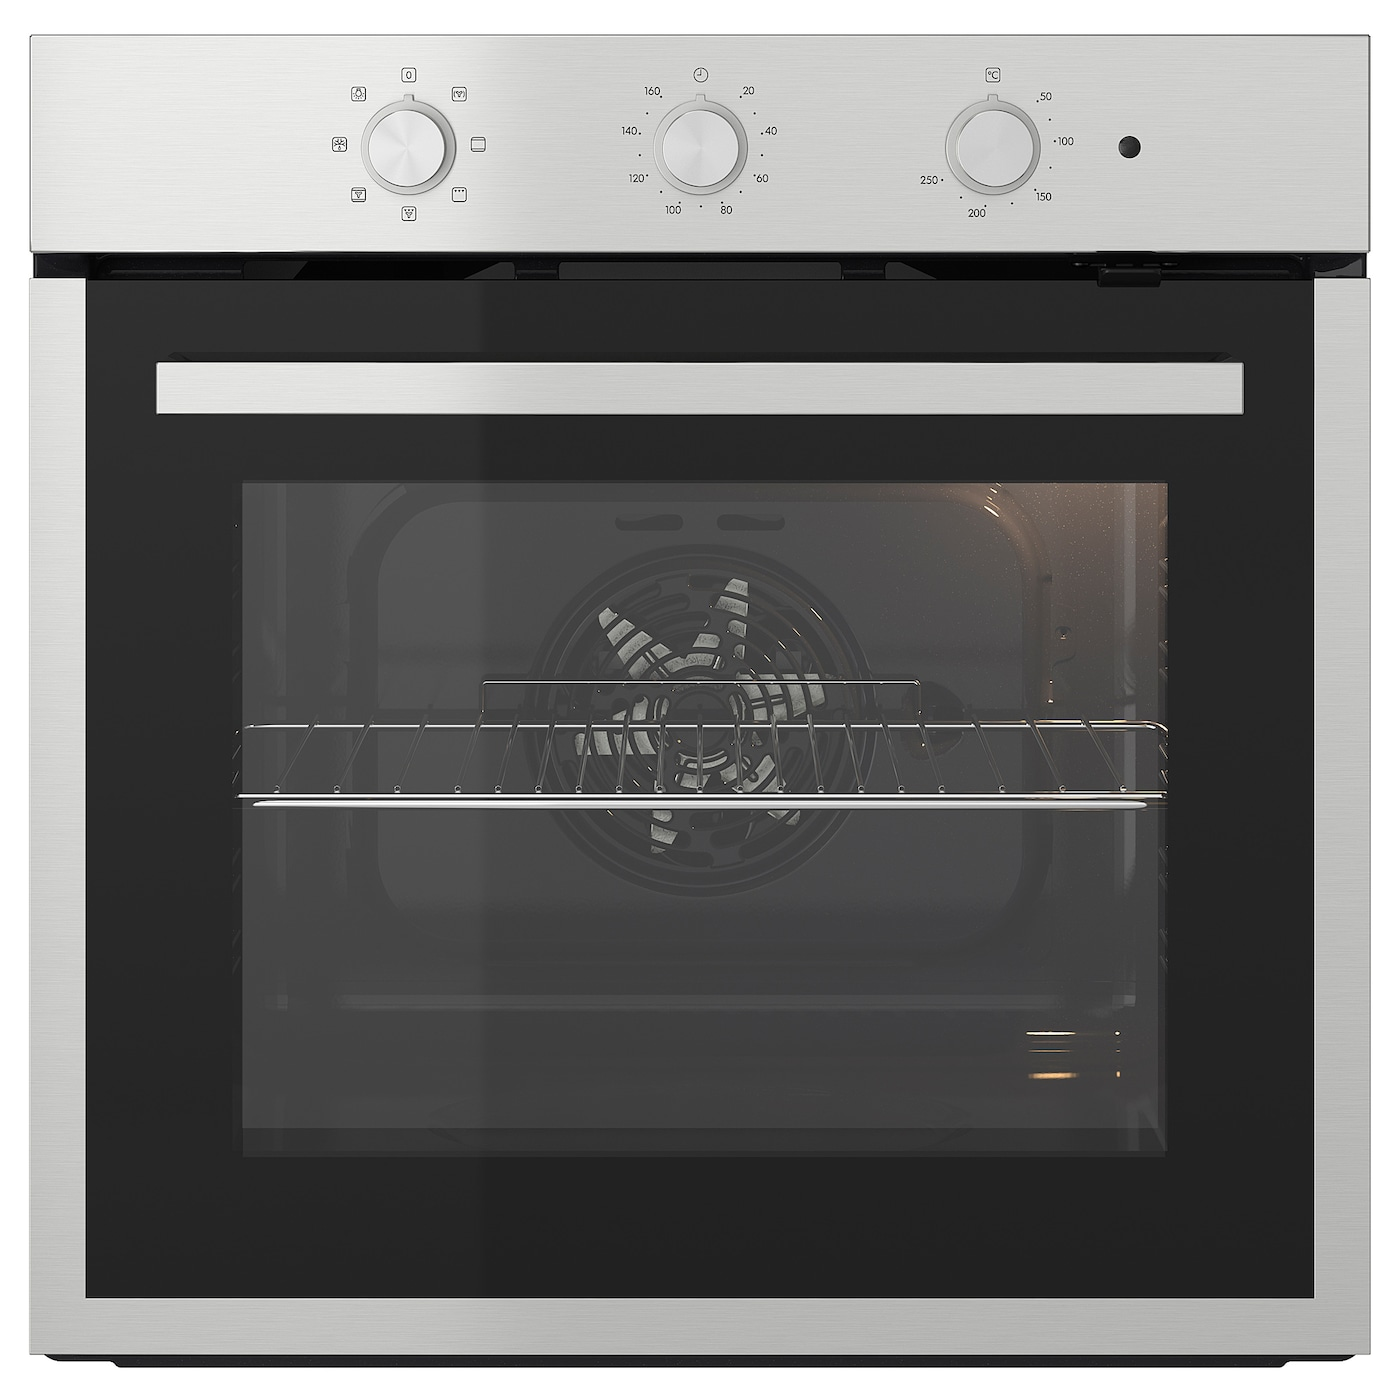 MATÄLSKARE Forced air oven stainless steel colour